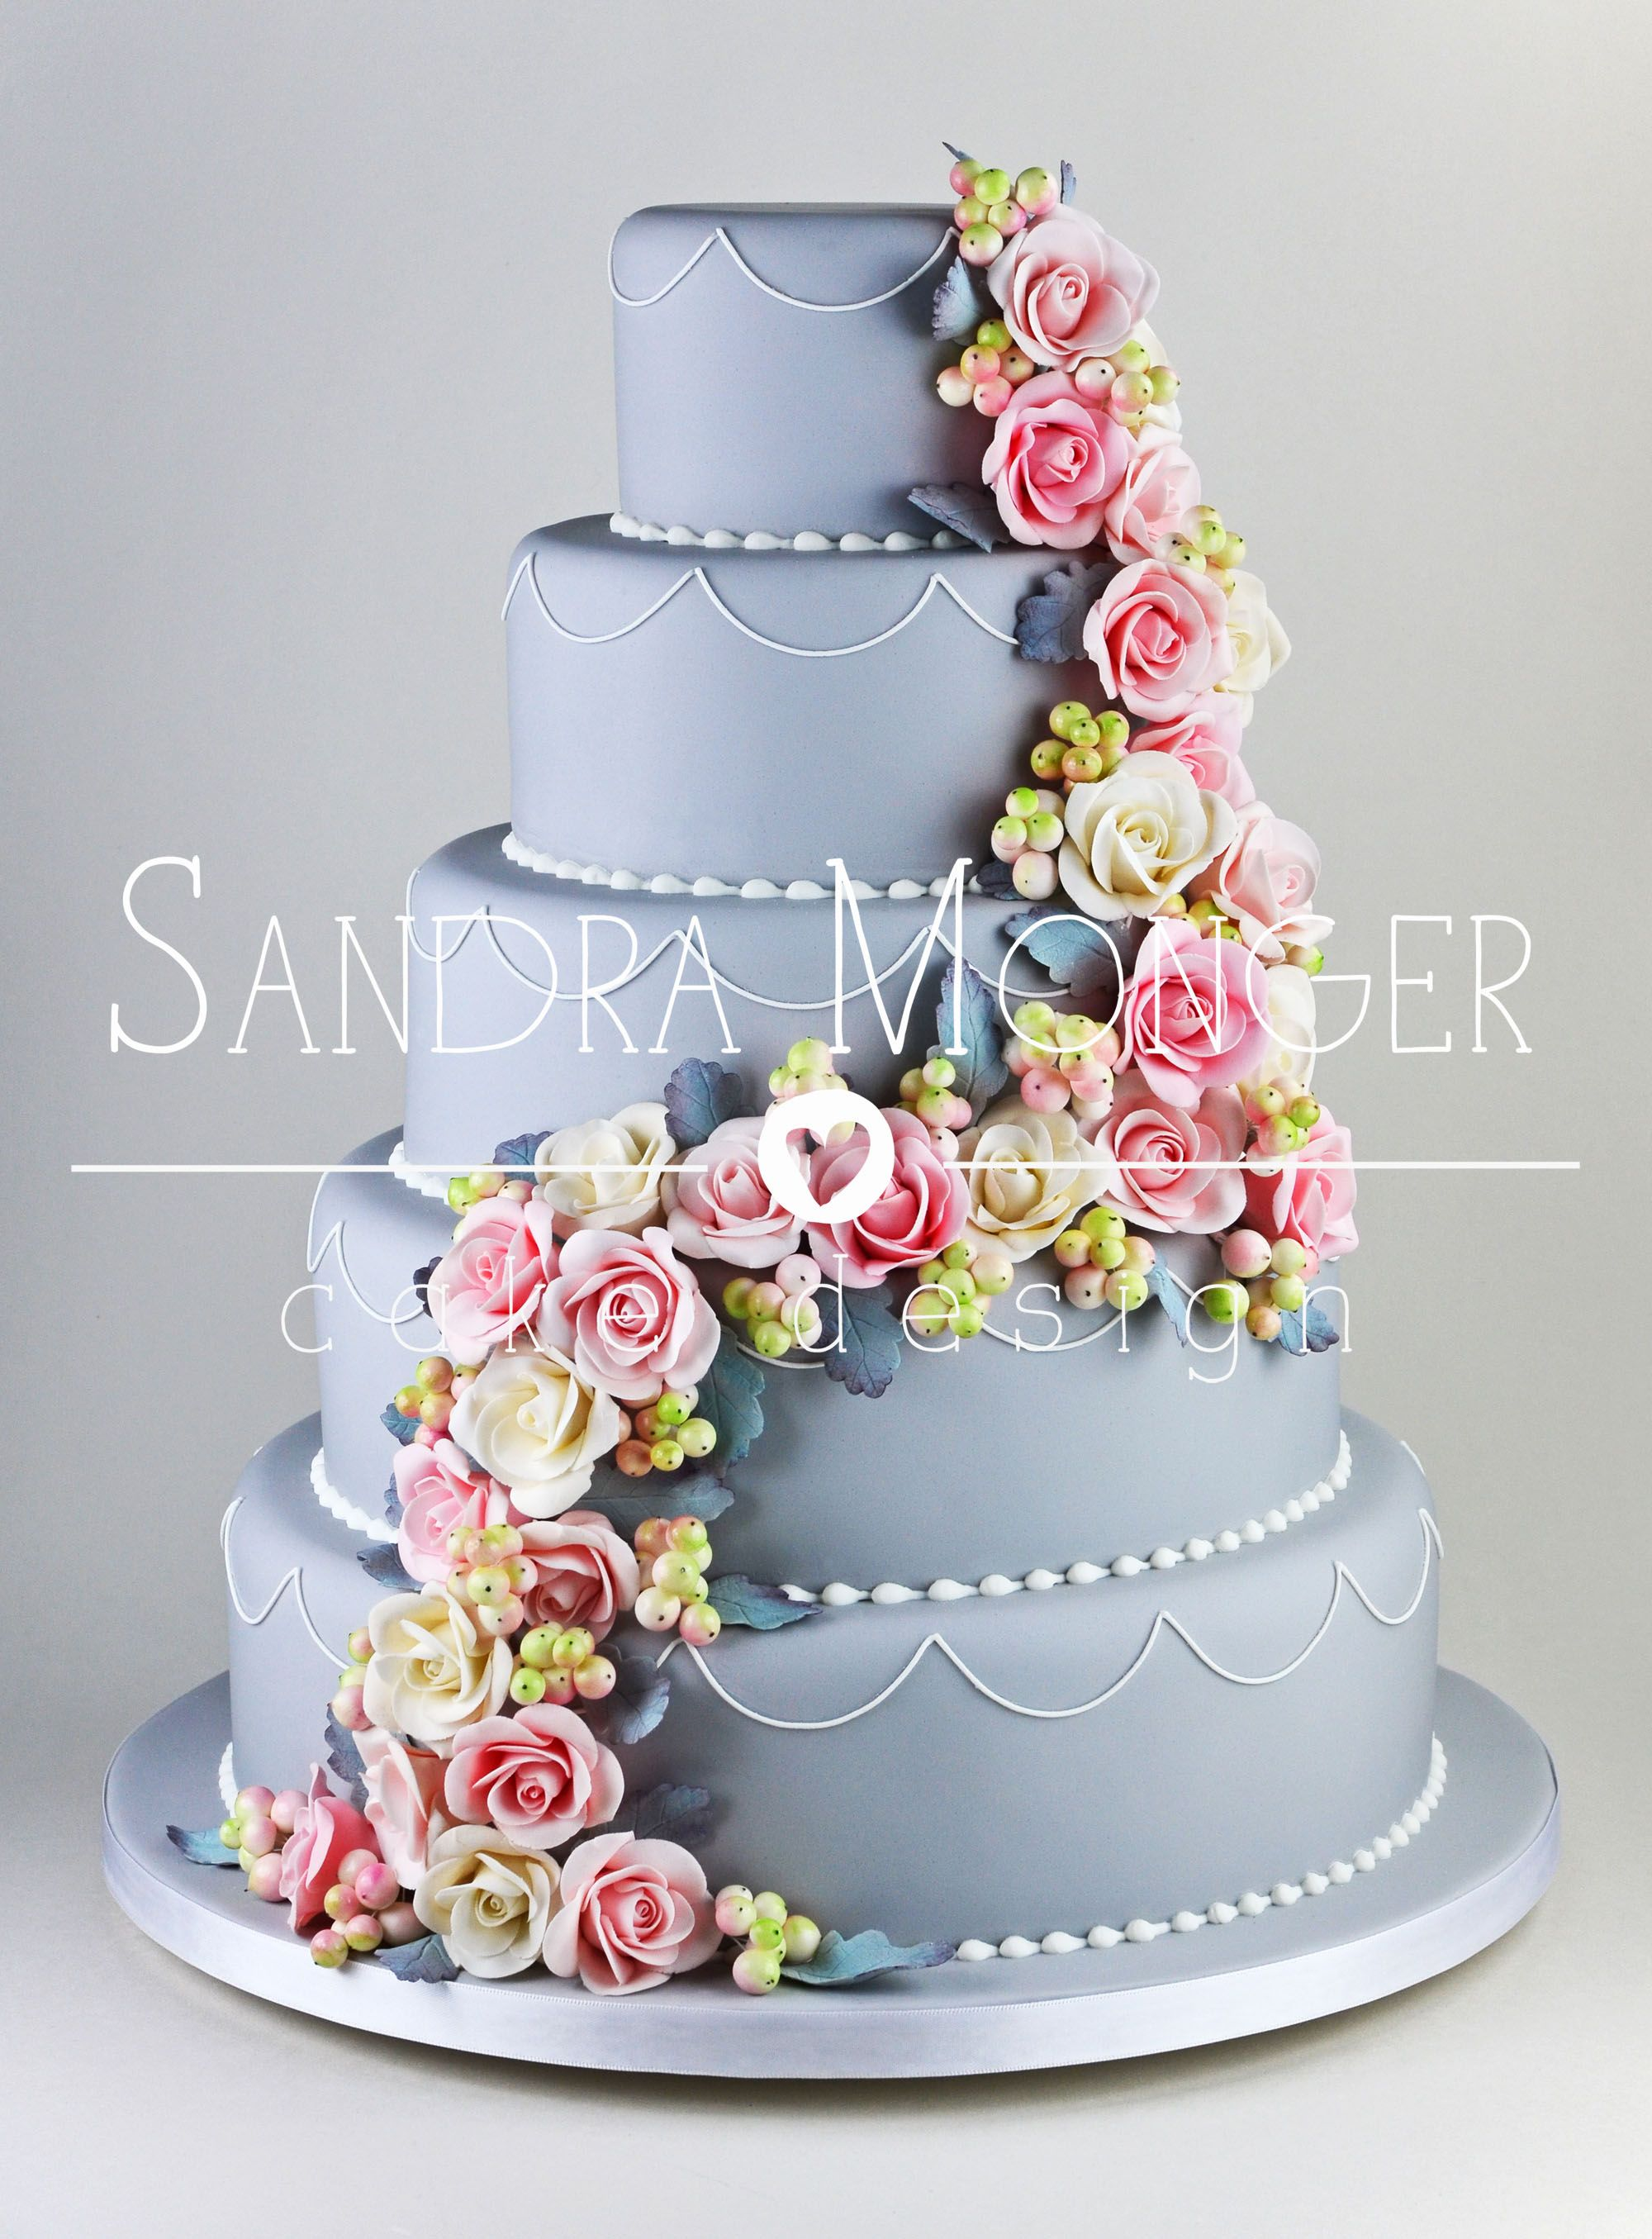 Traditional wedding decor blue and white  Pink and white rose cascade with dusty miller leaves and snowberries